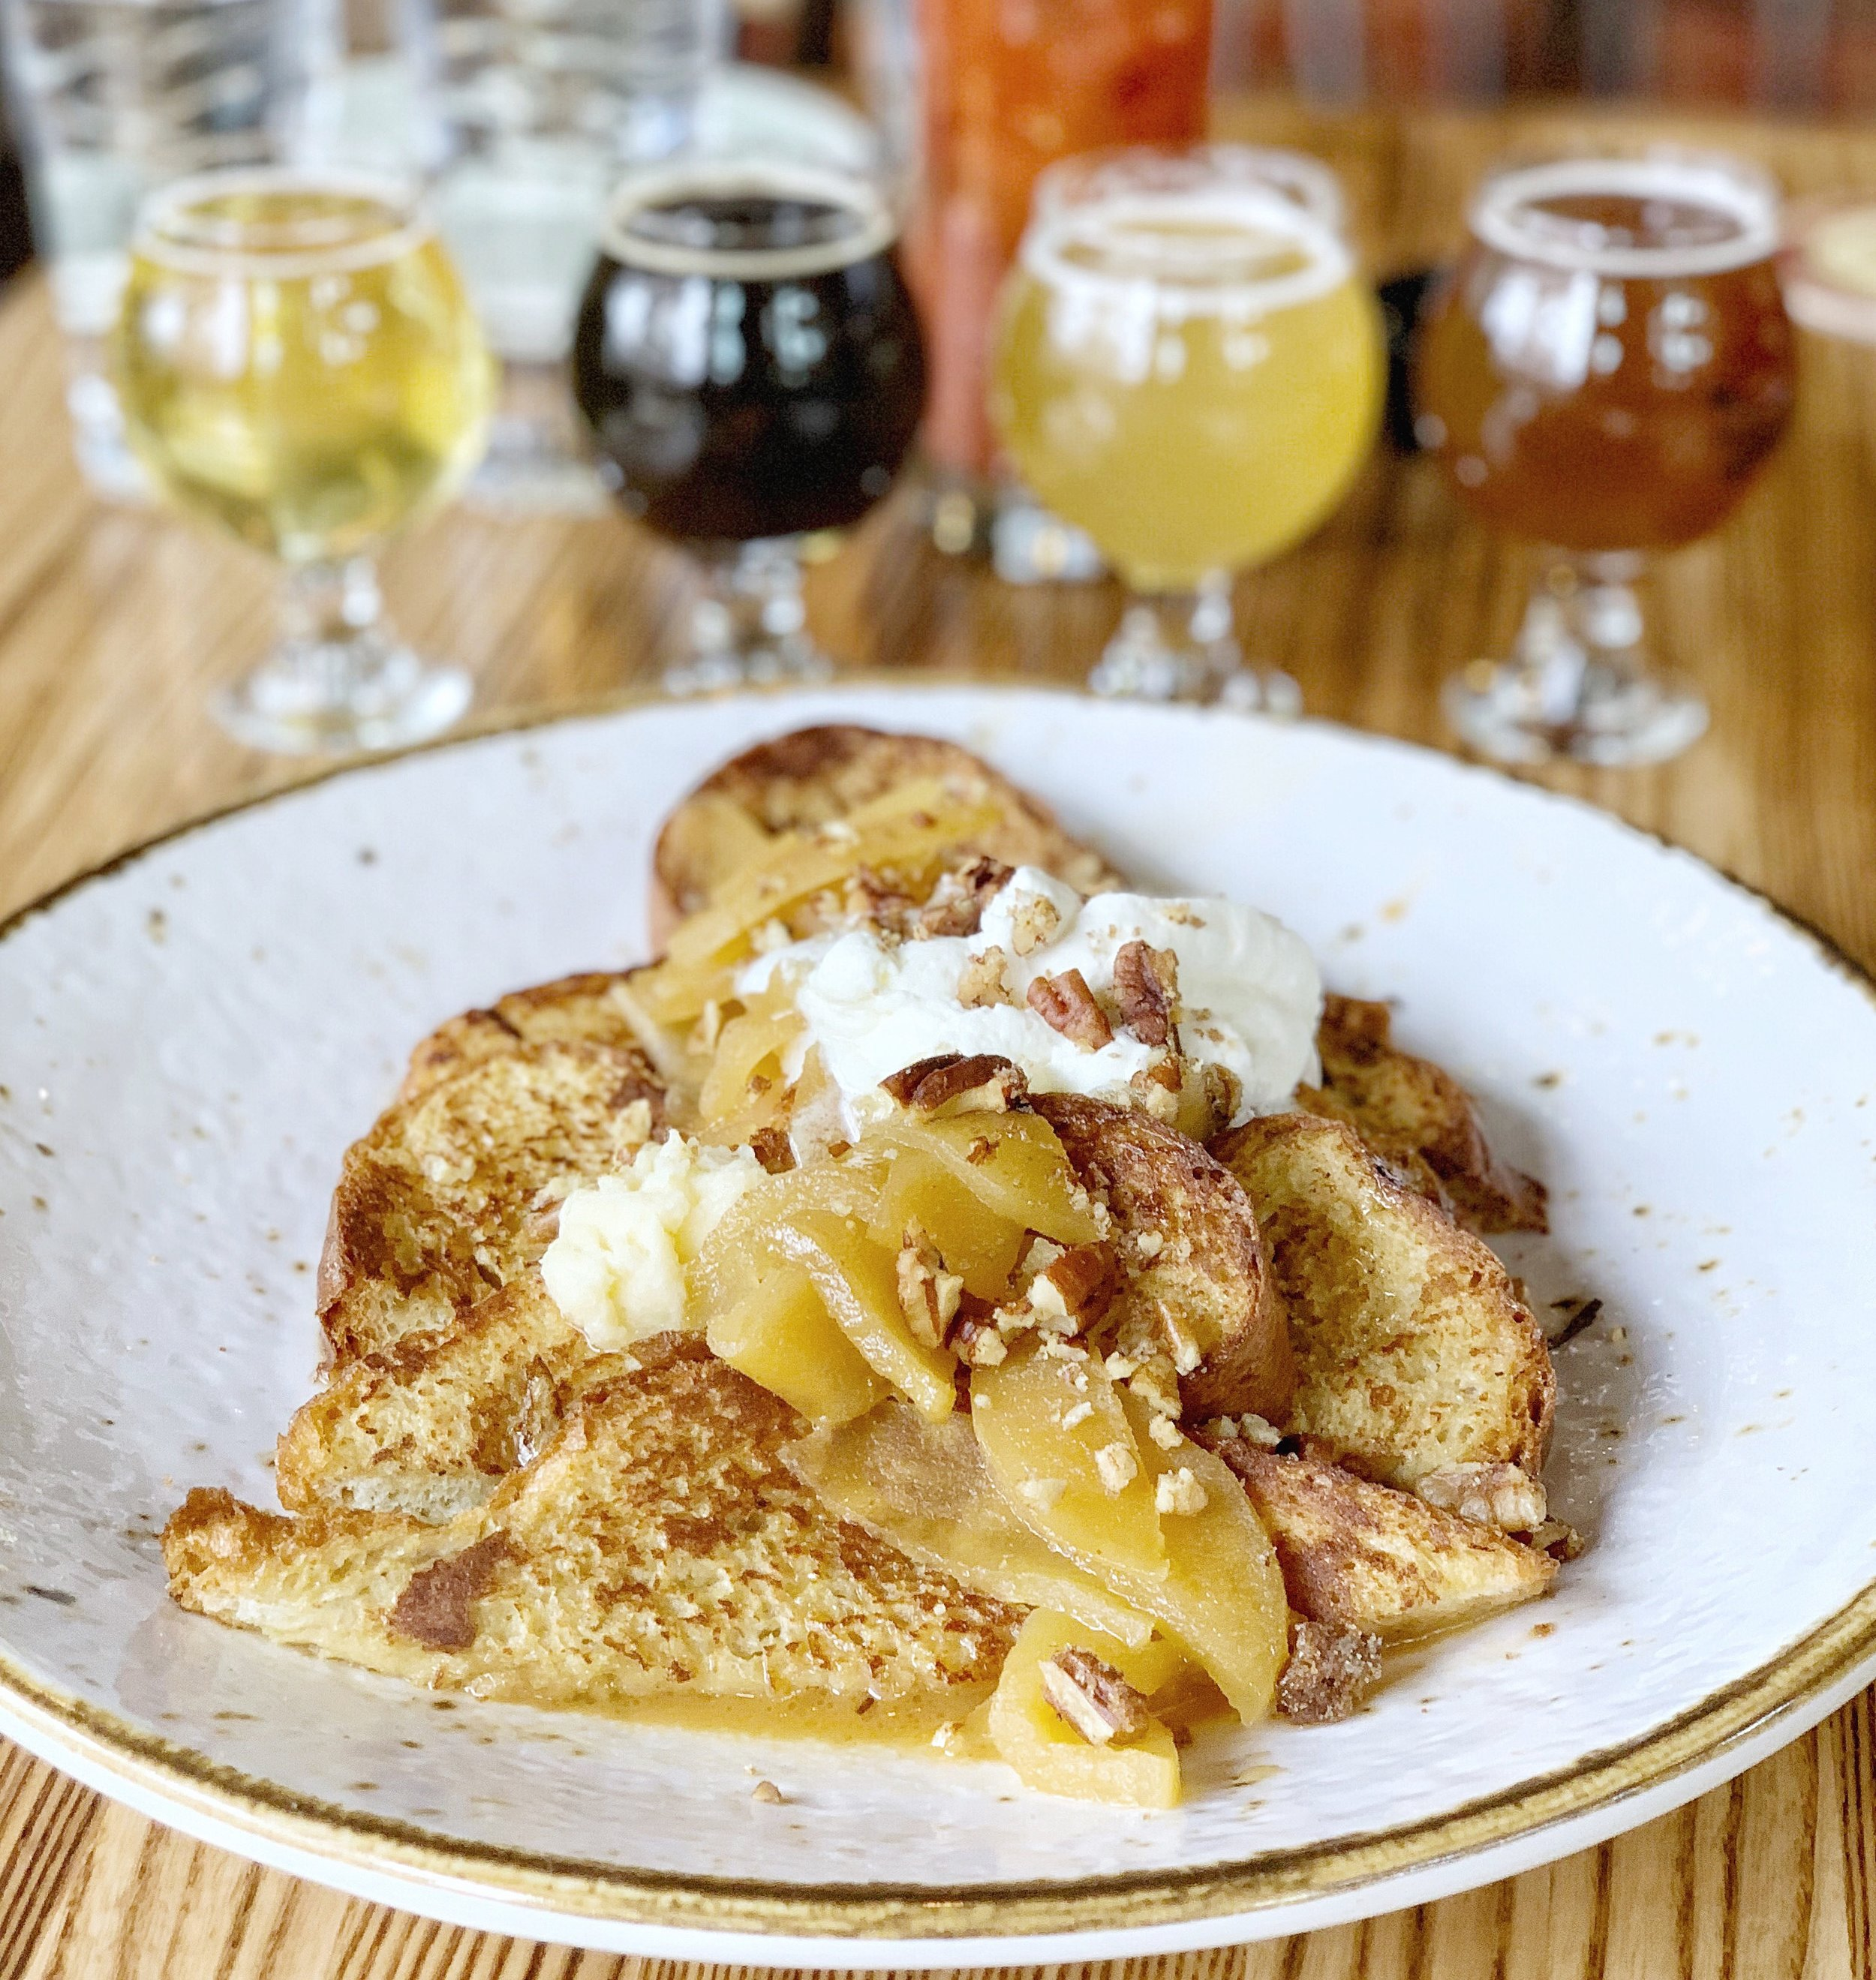 Caramel APple French toast - Caramel apples, toasted pecans, whipped cream, honey butter, & maple syrupThat's right: I put French toast under dessert. Because I eat dessert after breakfast, brunch, lunch, elevensies – you name it. I would also just order this on its own, too. In fact, this was my favorite dish of the tasting. FIGHT ME, JASON. Just kidding, he liked it also and we are getting along just fine, thanks for asking.